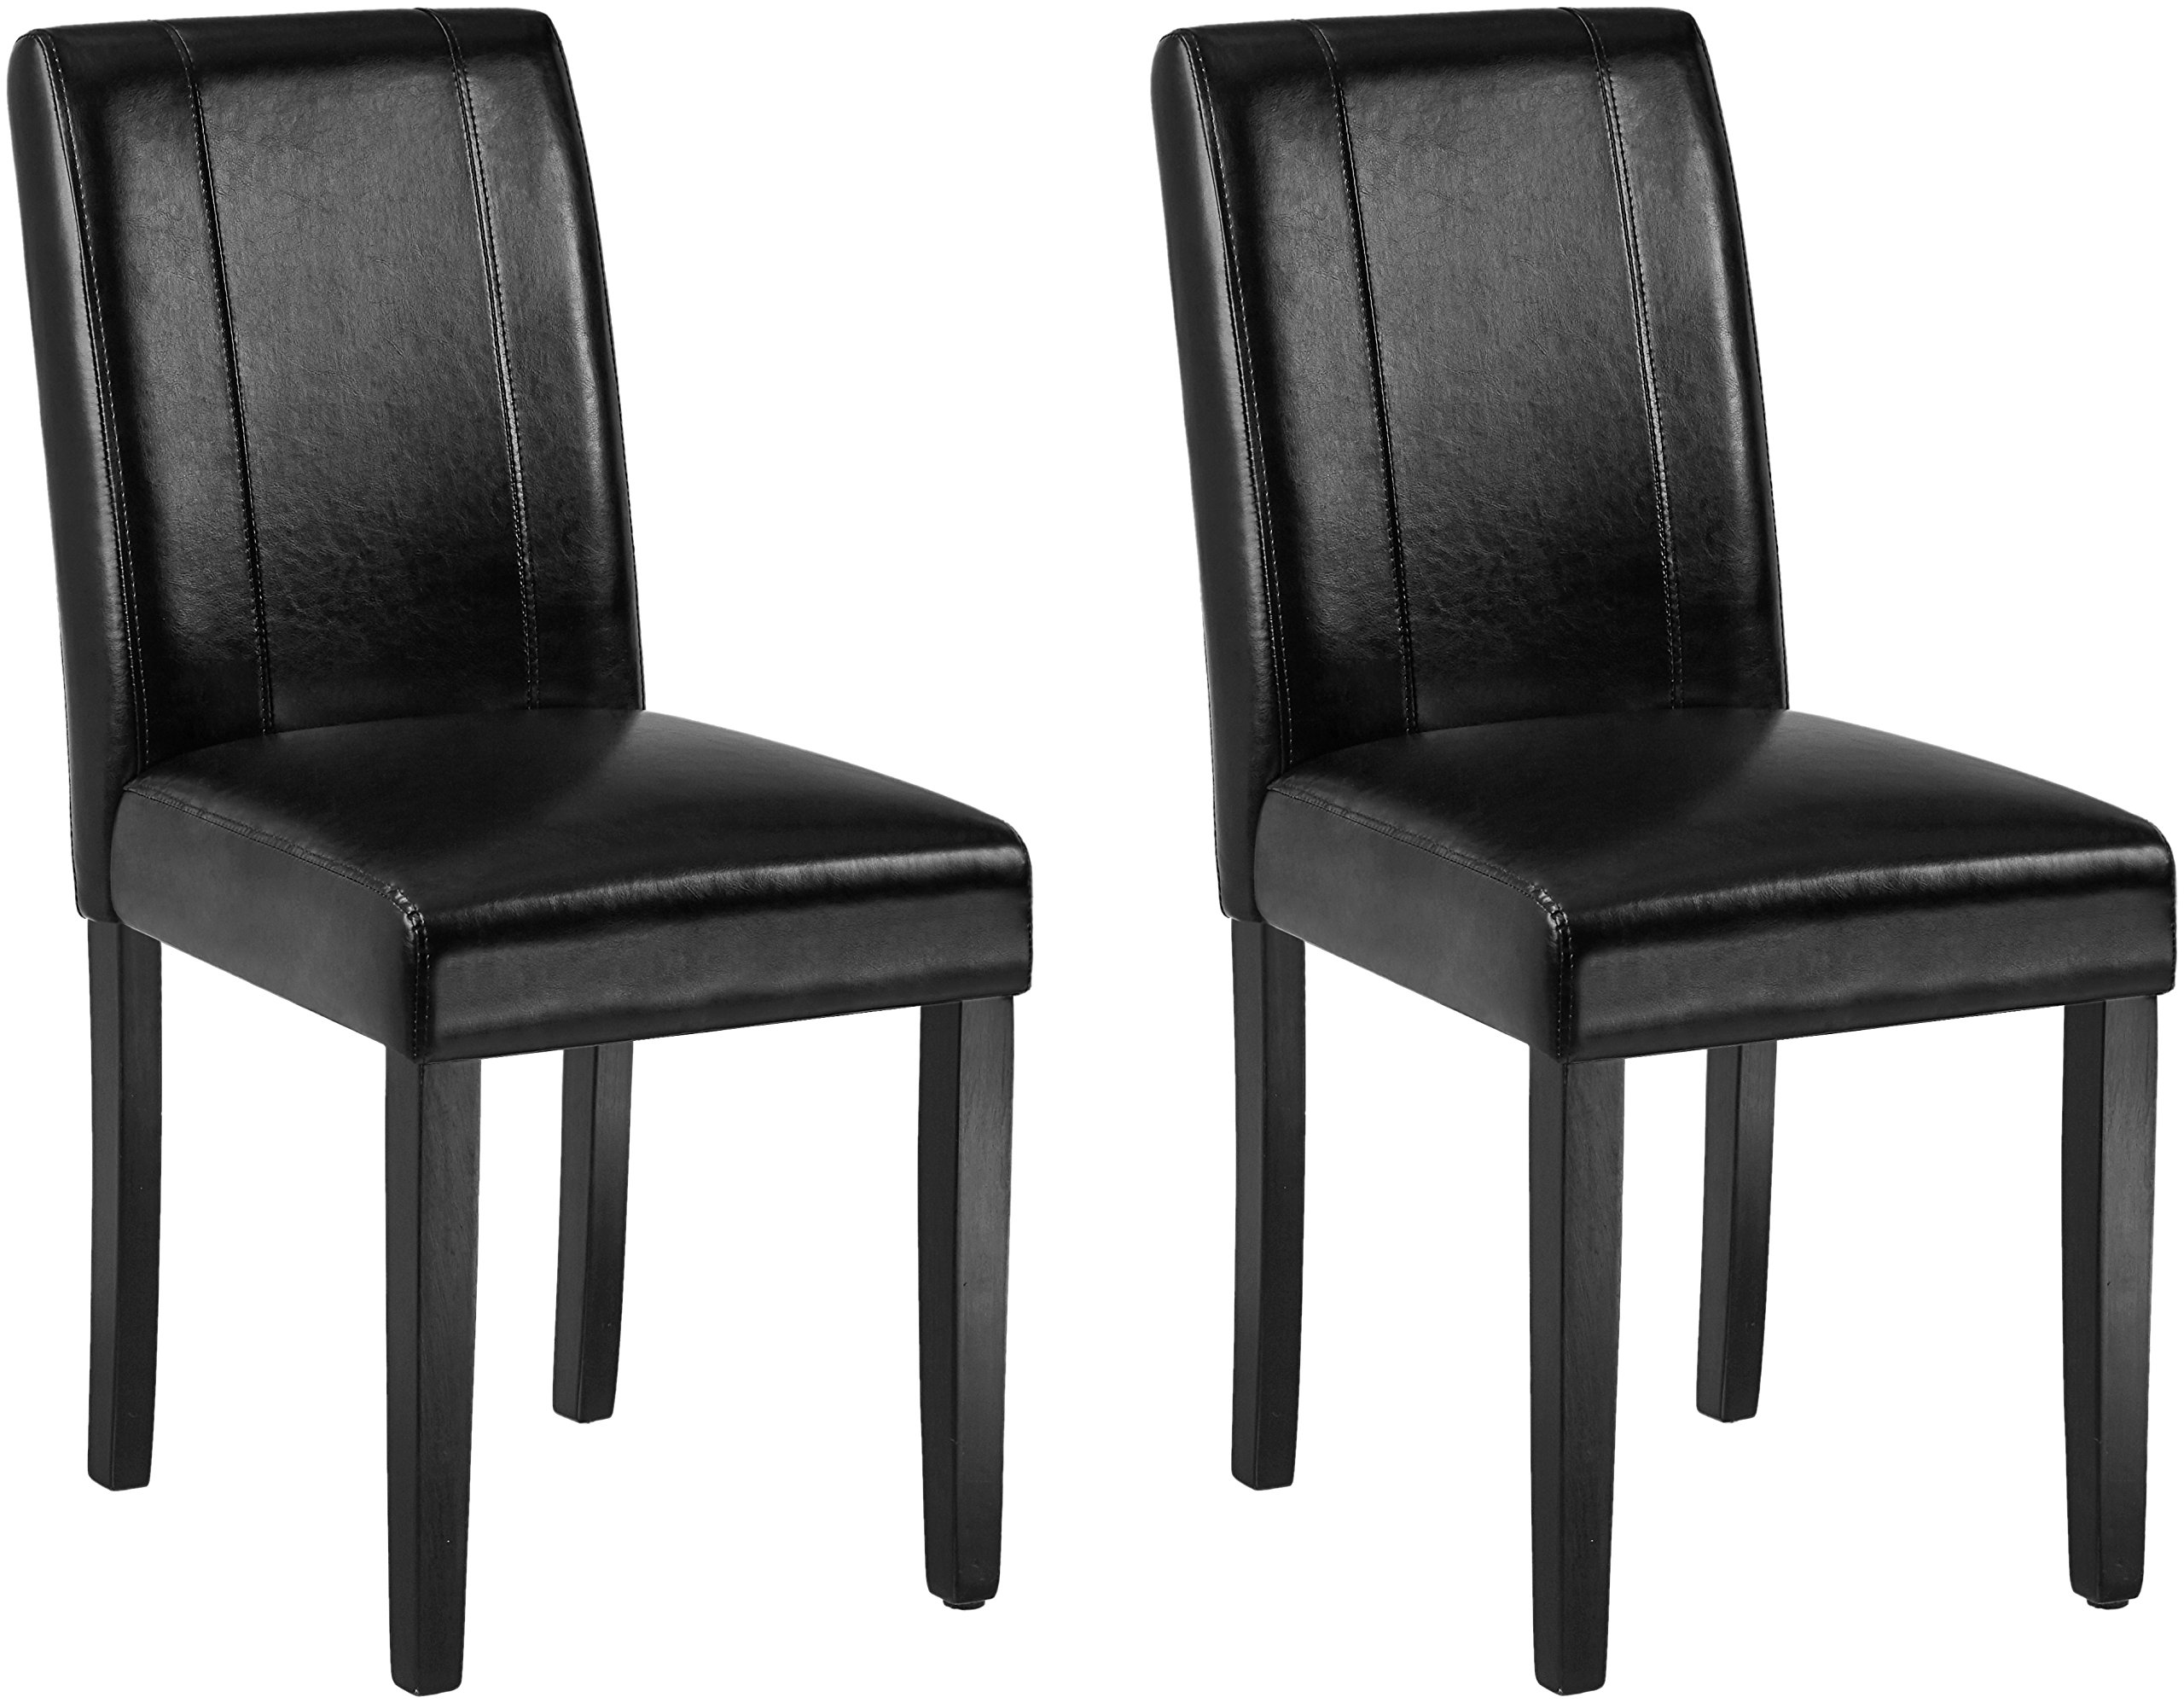 AmazonBasics Padded Dining Chair - Set of 2, Black